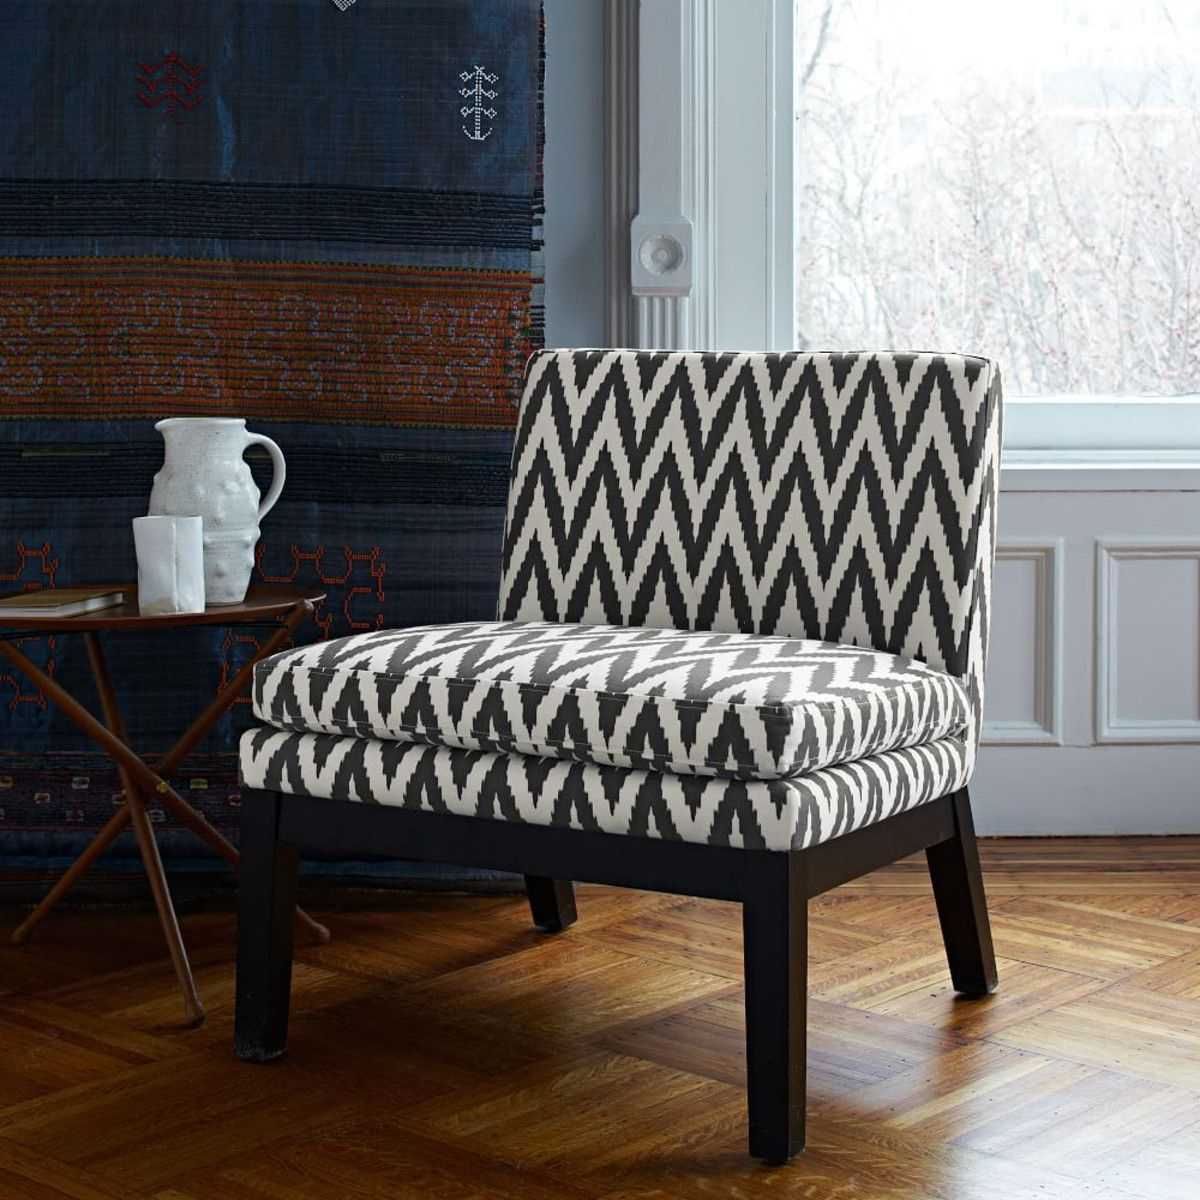 Slipper Chair – Prints | Affordable Contemporary Furniture Throughout Wadhurst Slipper Chairs (View 3 of 15)